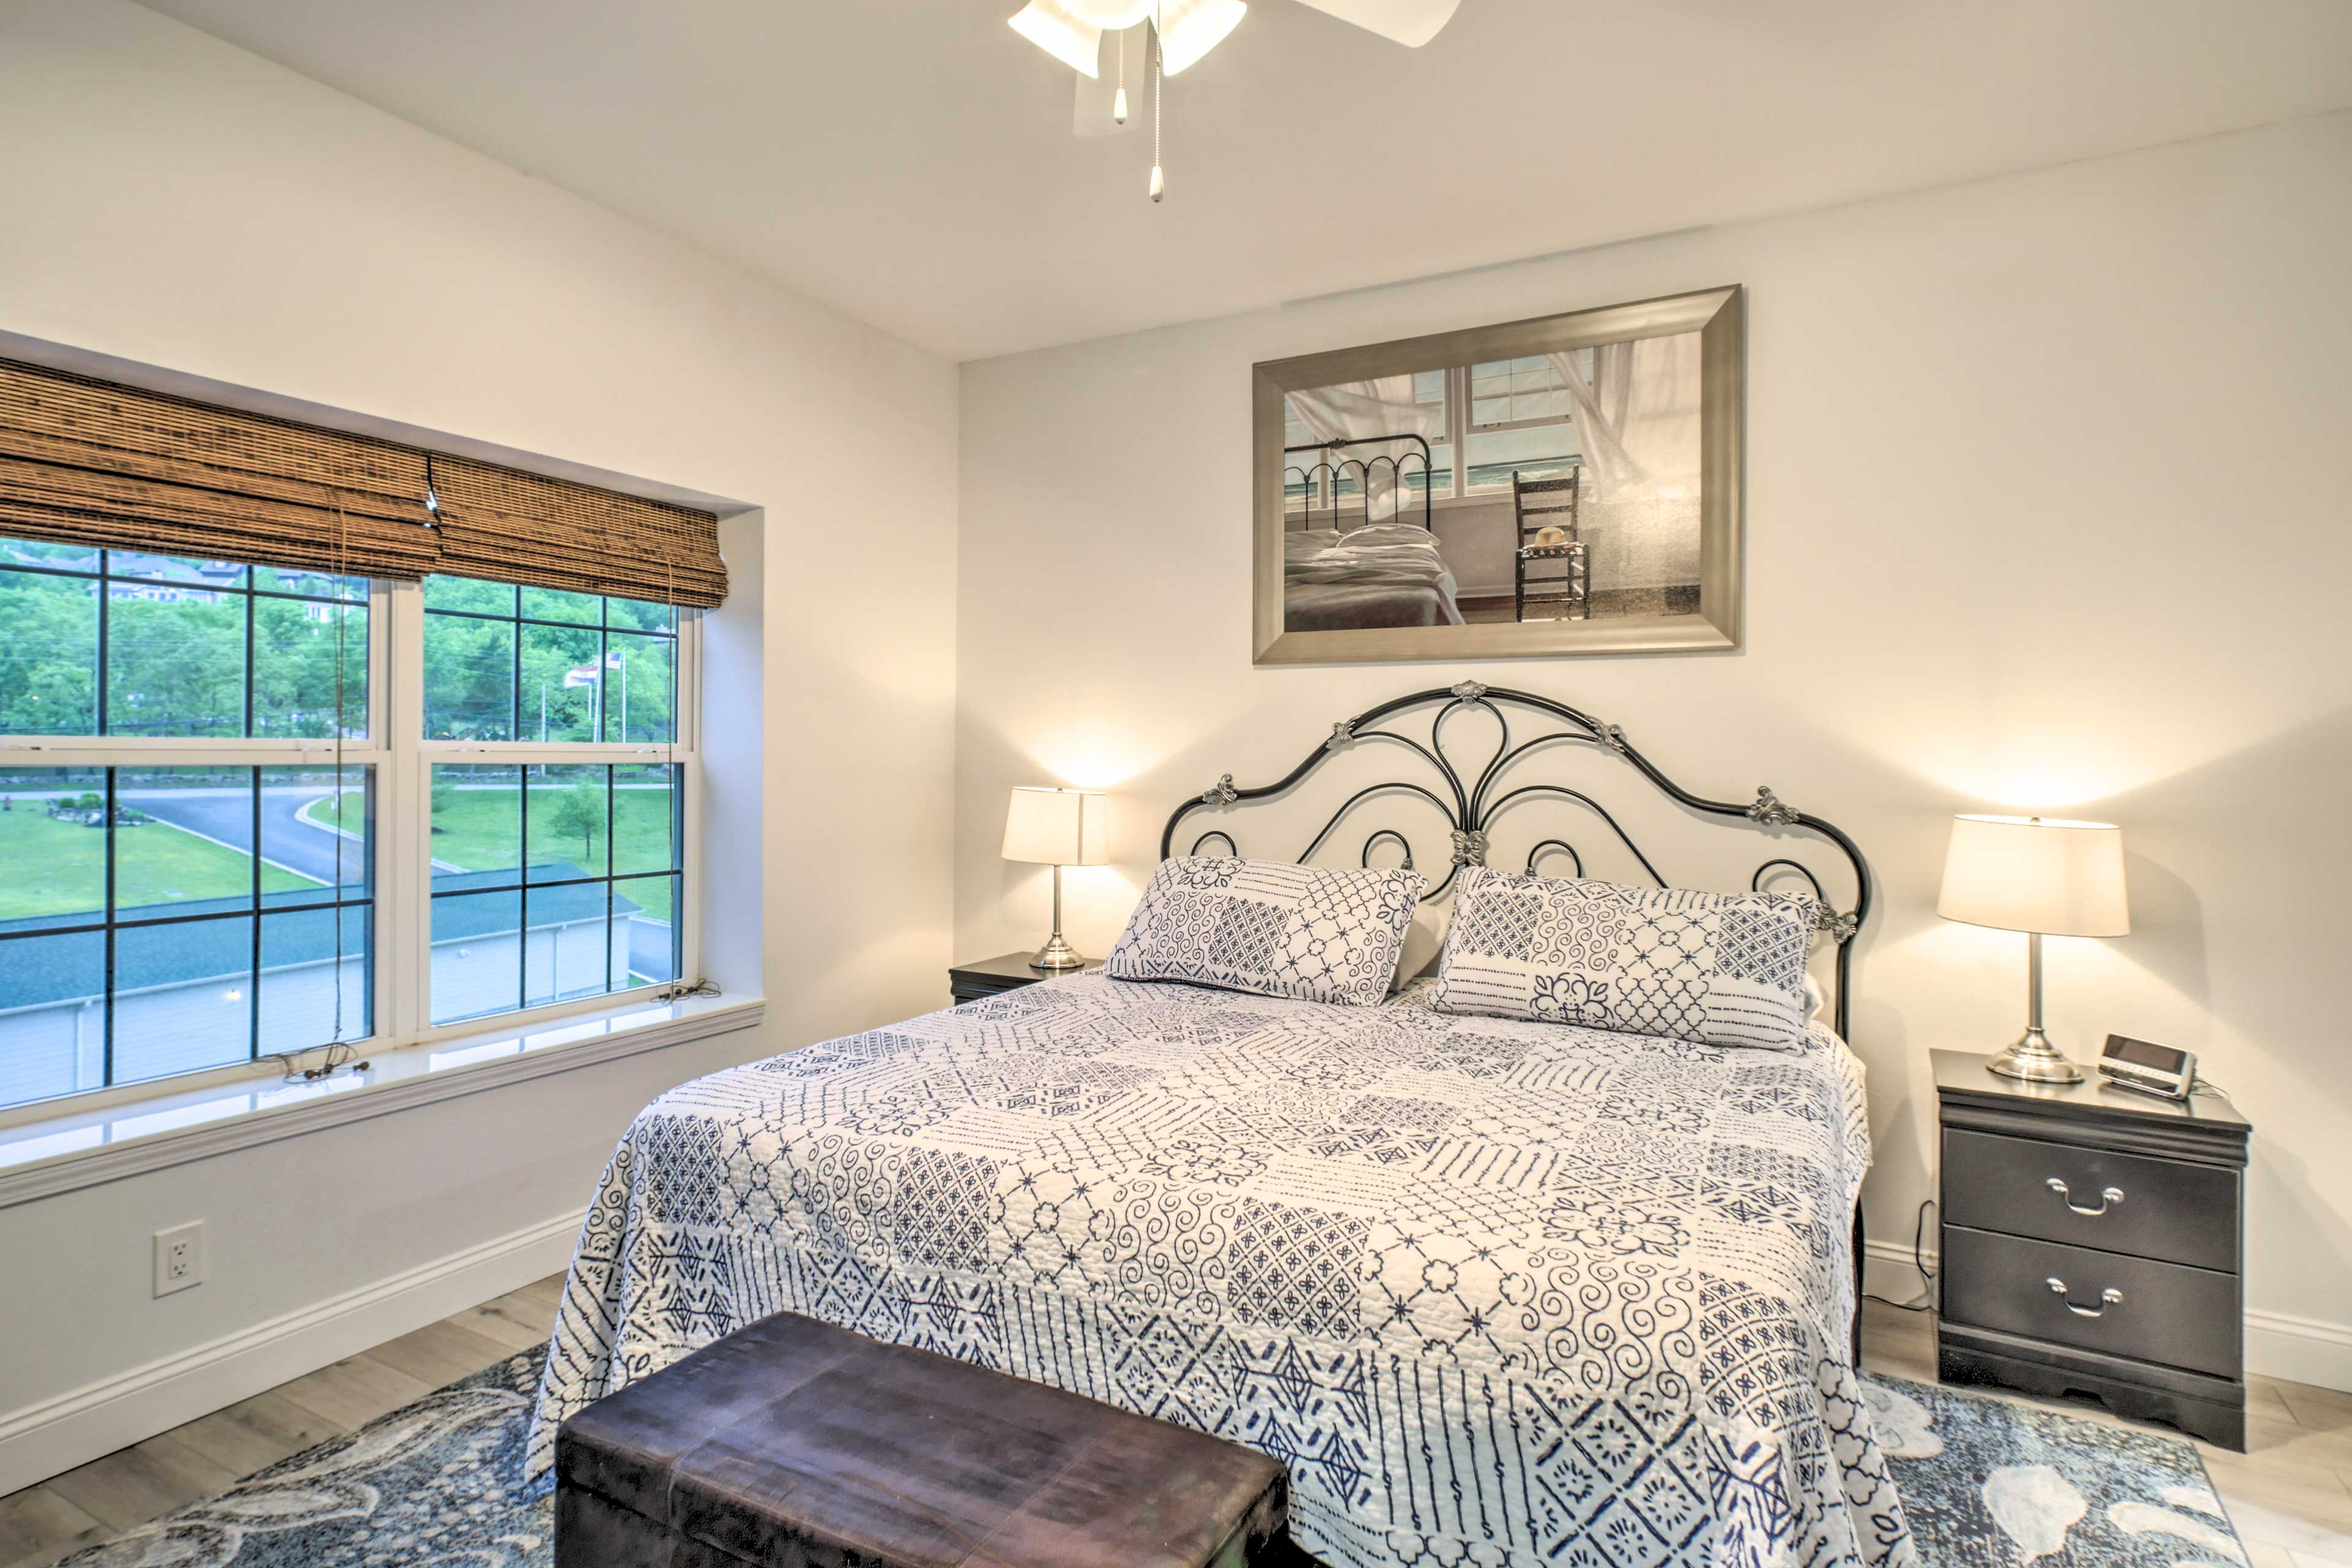 The second bedroom features a king-sized bed.